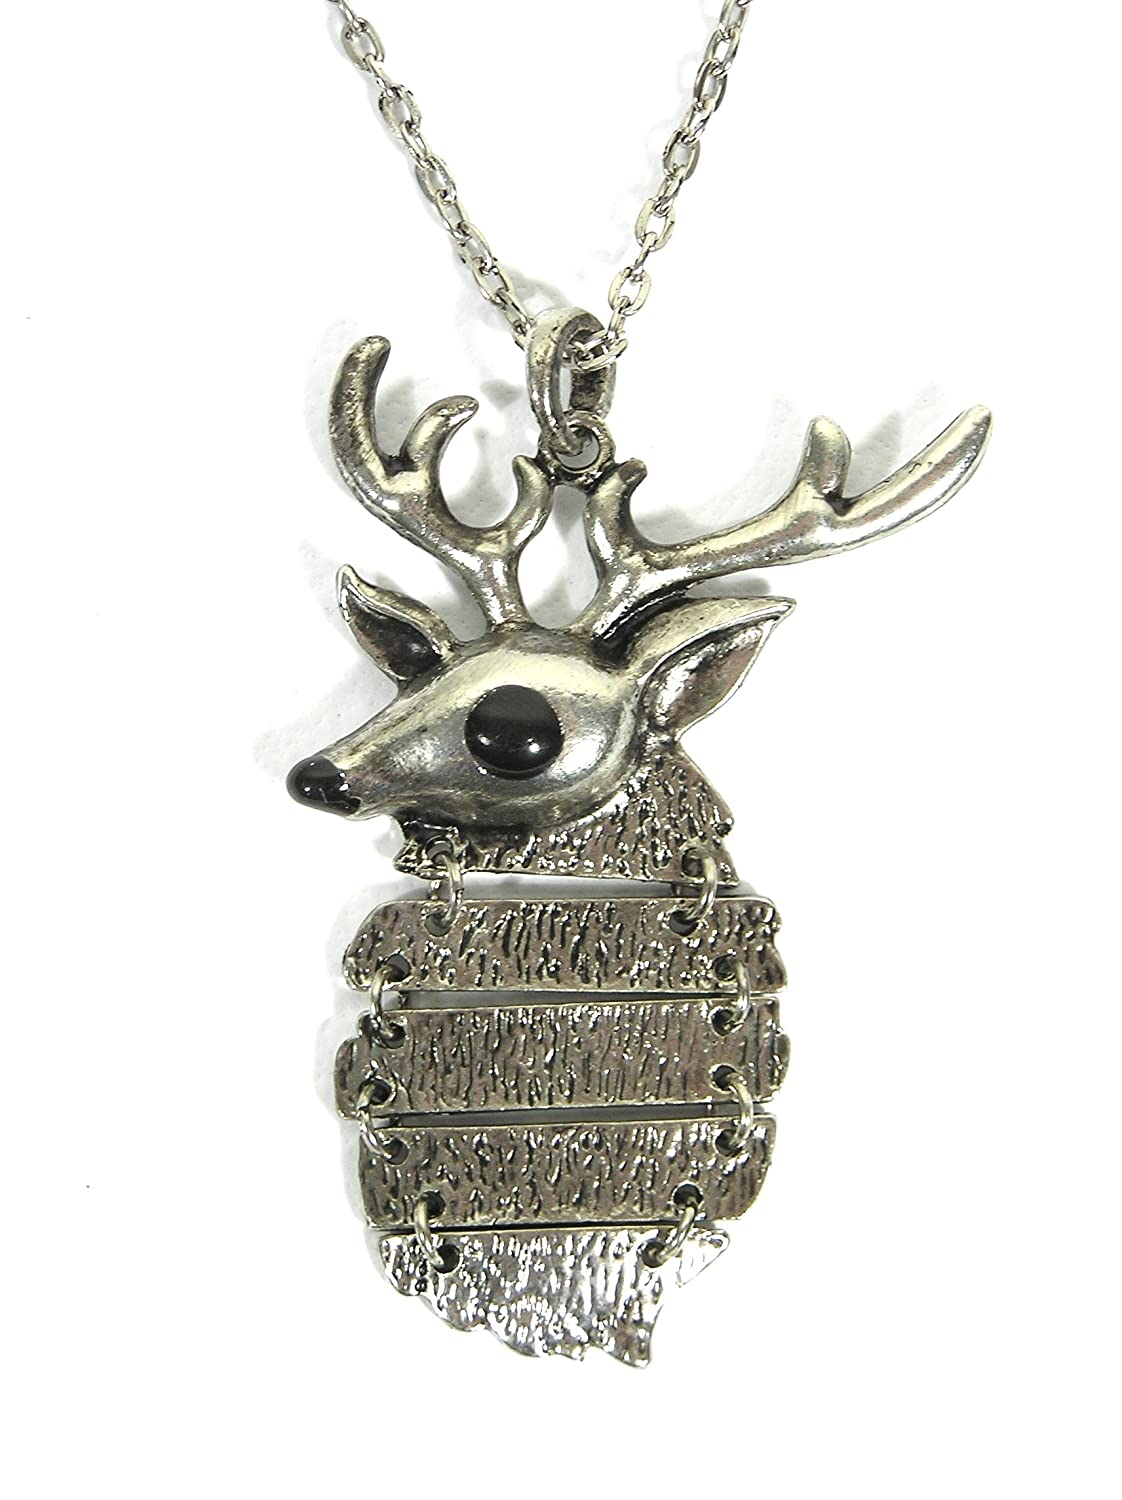 Magic Metal Deer Buck Necklace Antler Skull Silver Tone NB00 Vintage Taxidermy Charm Pendant Fashion Jewelry